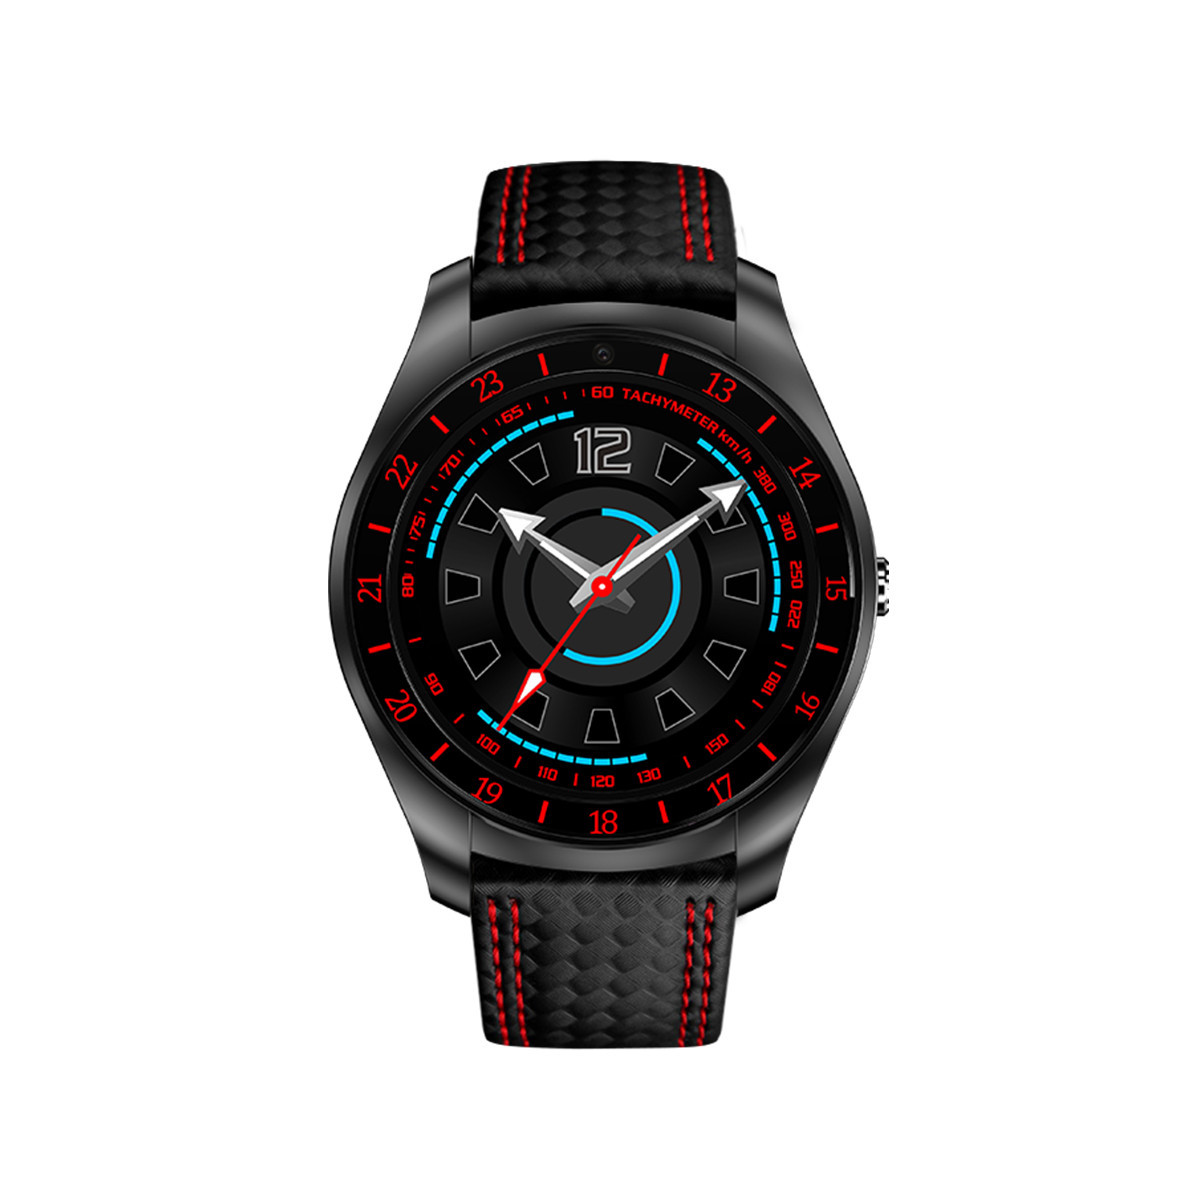 Persevering V10hr Smart Watch Camera Blue Tooth Heart Rate Monitor Pedometer Smartwatch Fashion Business Watch Men Reloj Hombre Dress Watches